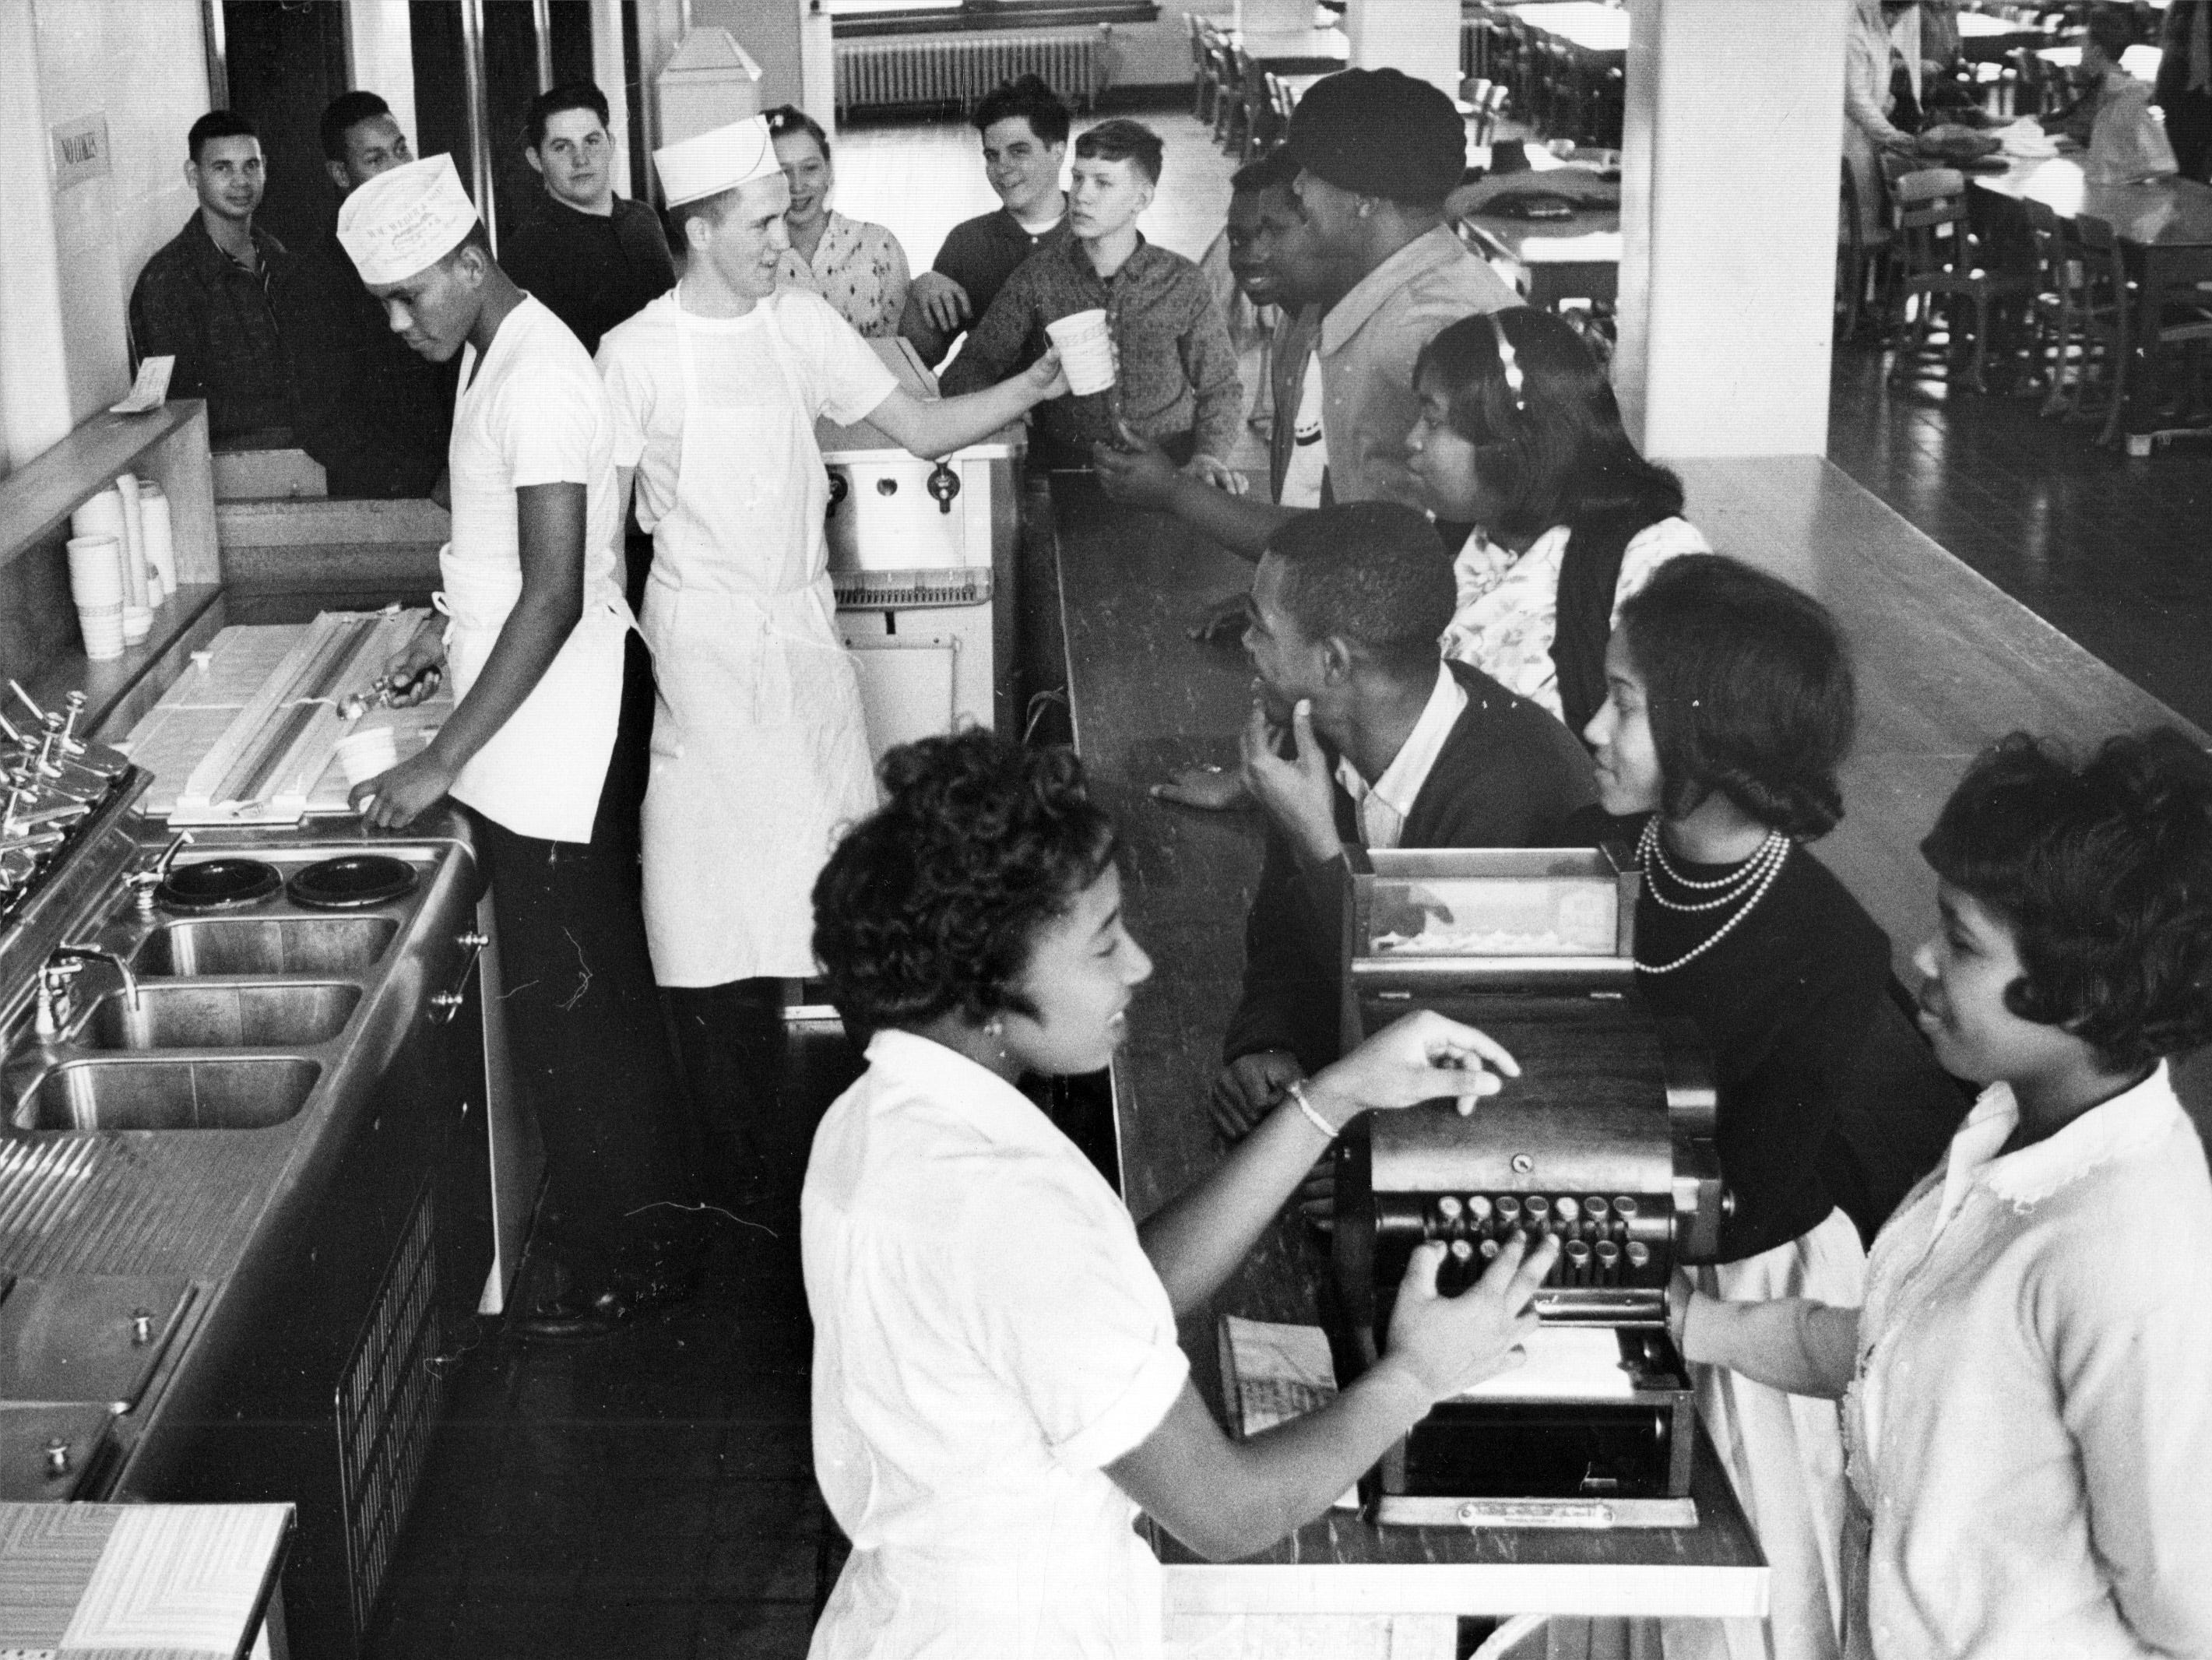 Wood high School students crowd a new ice cream bar - the first of its kind in Indianapolis high schools - in the school cafeteria in 1962.